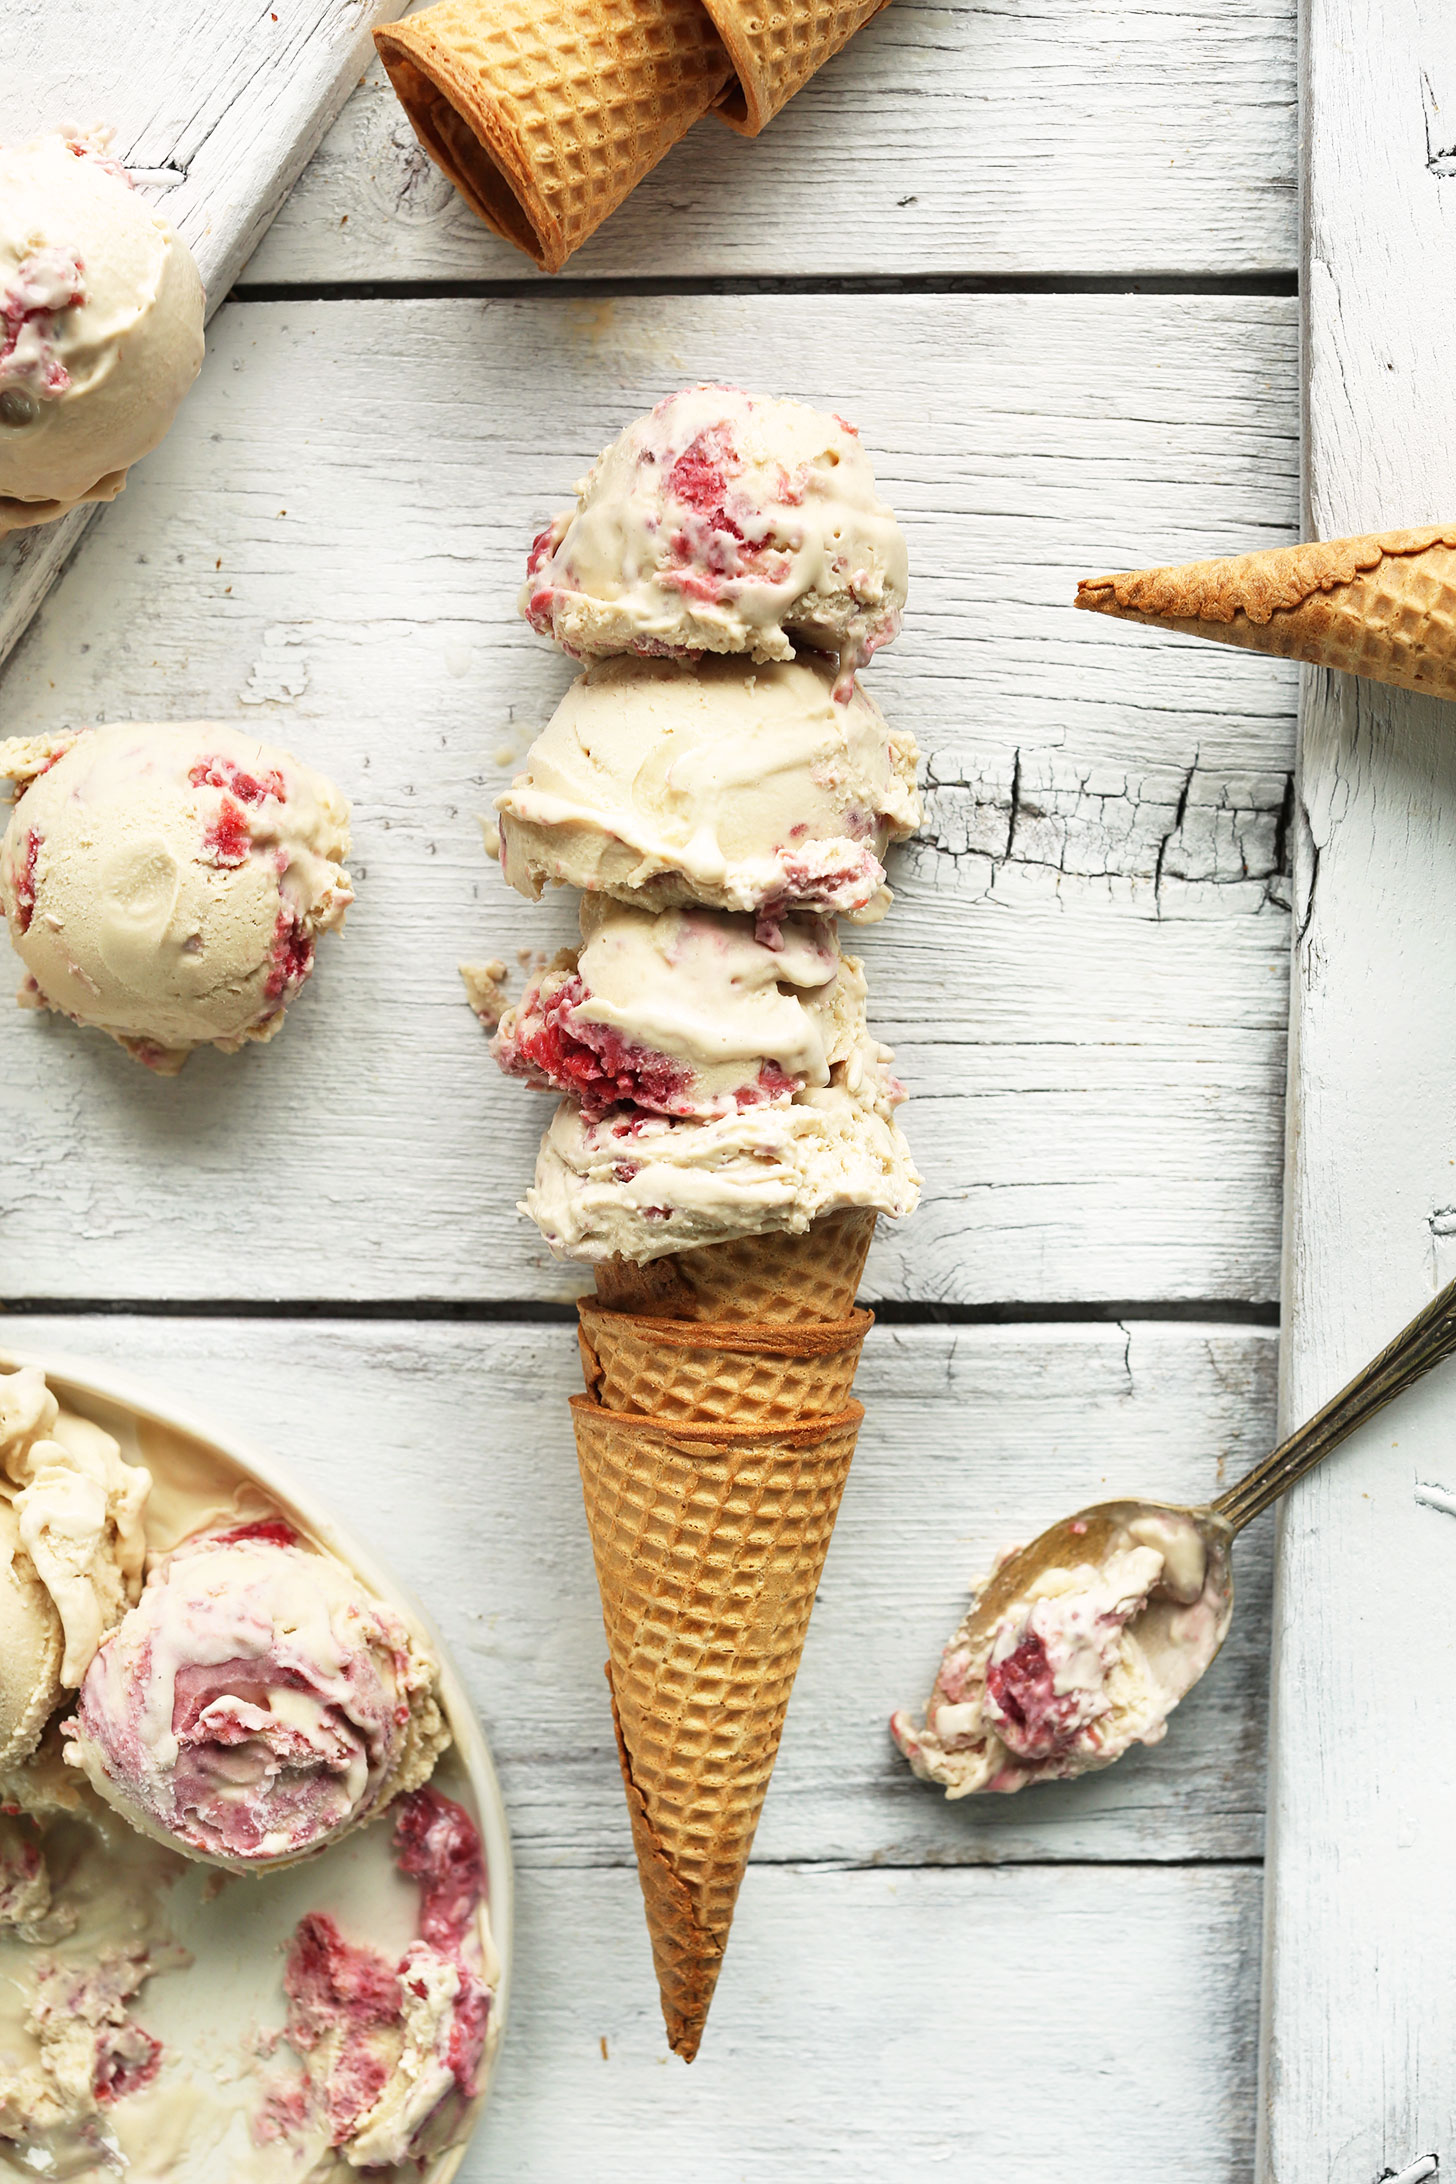 Quadruple scoop of our vegan Raspberry Swirl Coconut Ice Cream recipe